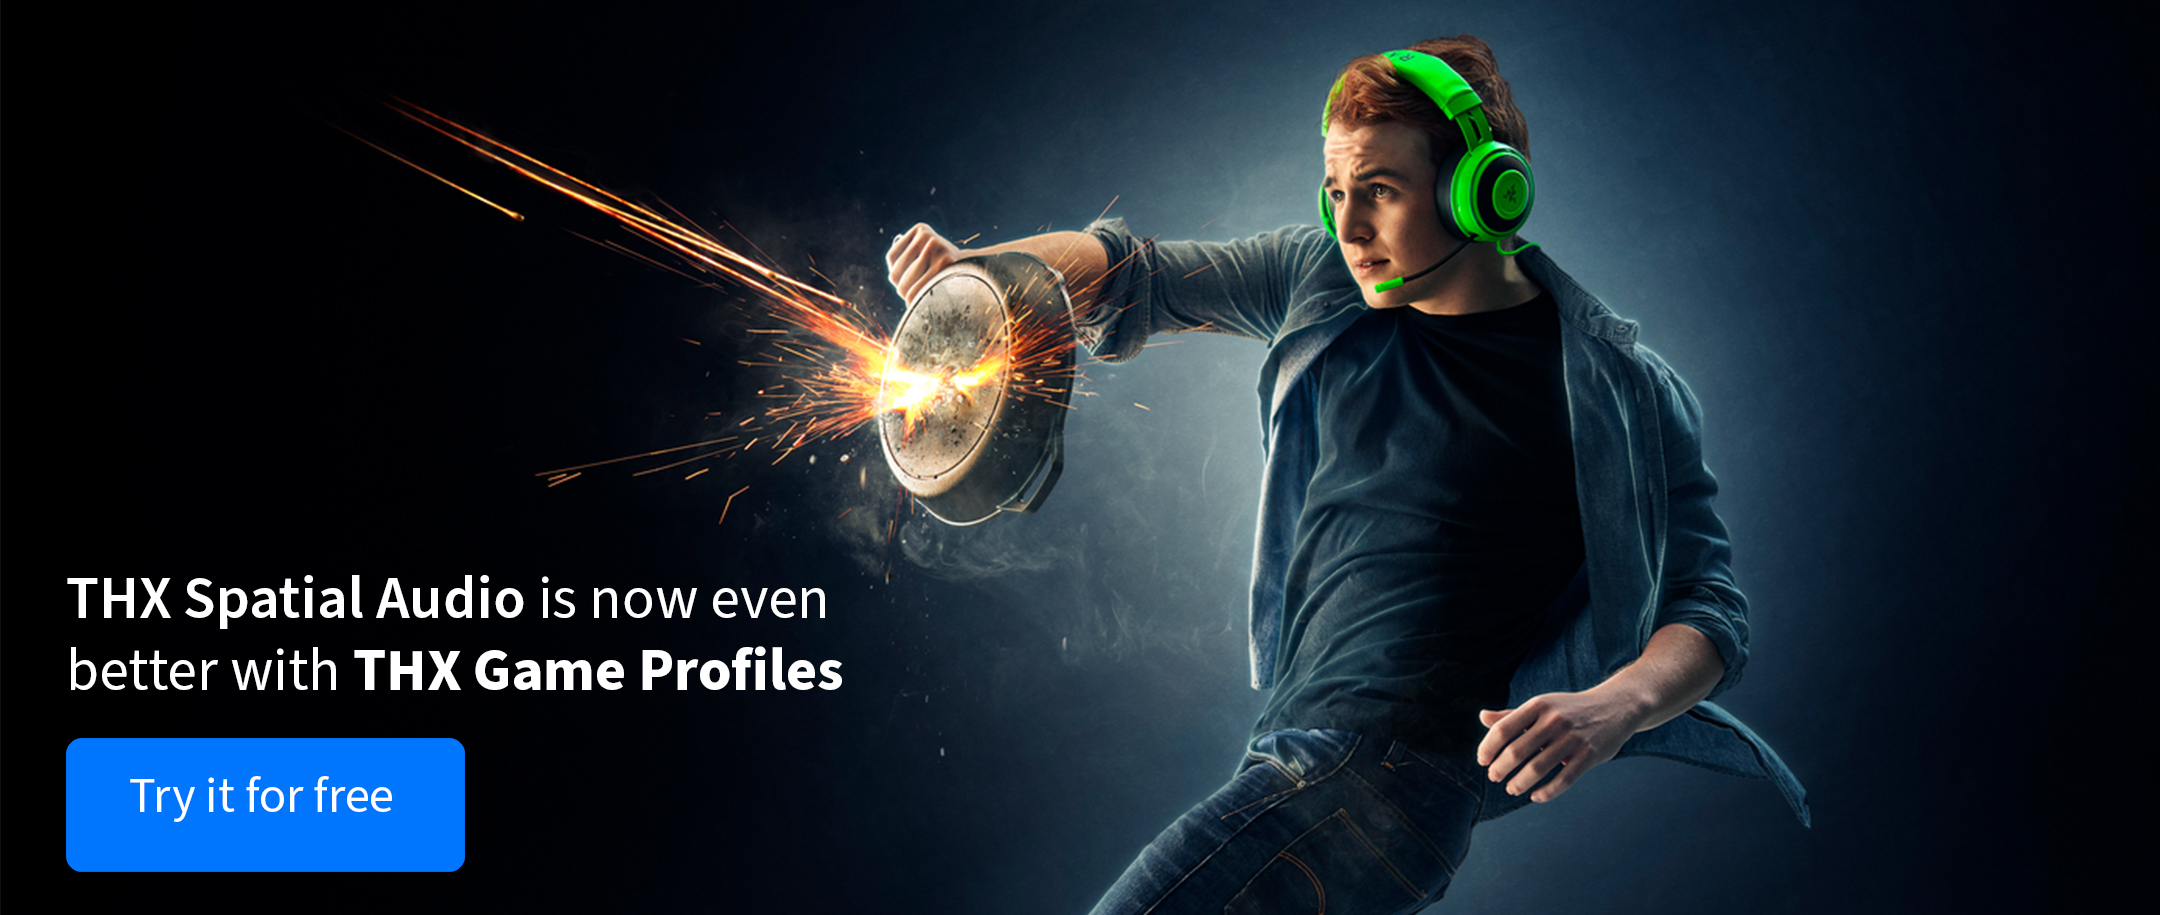 Man holding frying pan with Razer Kraken TE headset with THX Spatial Audio